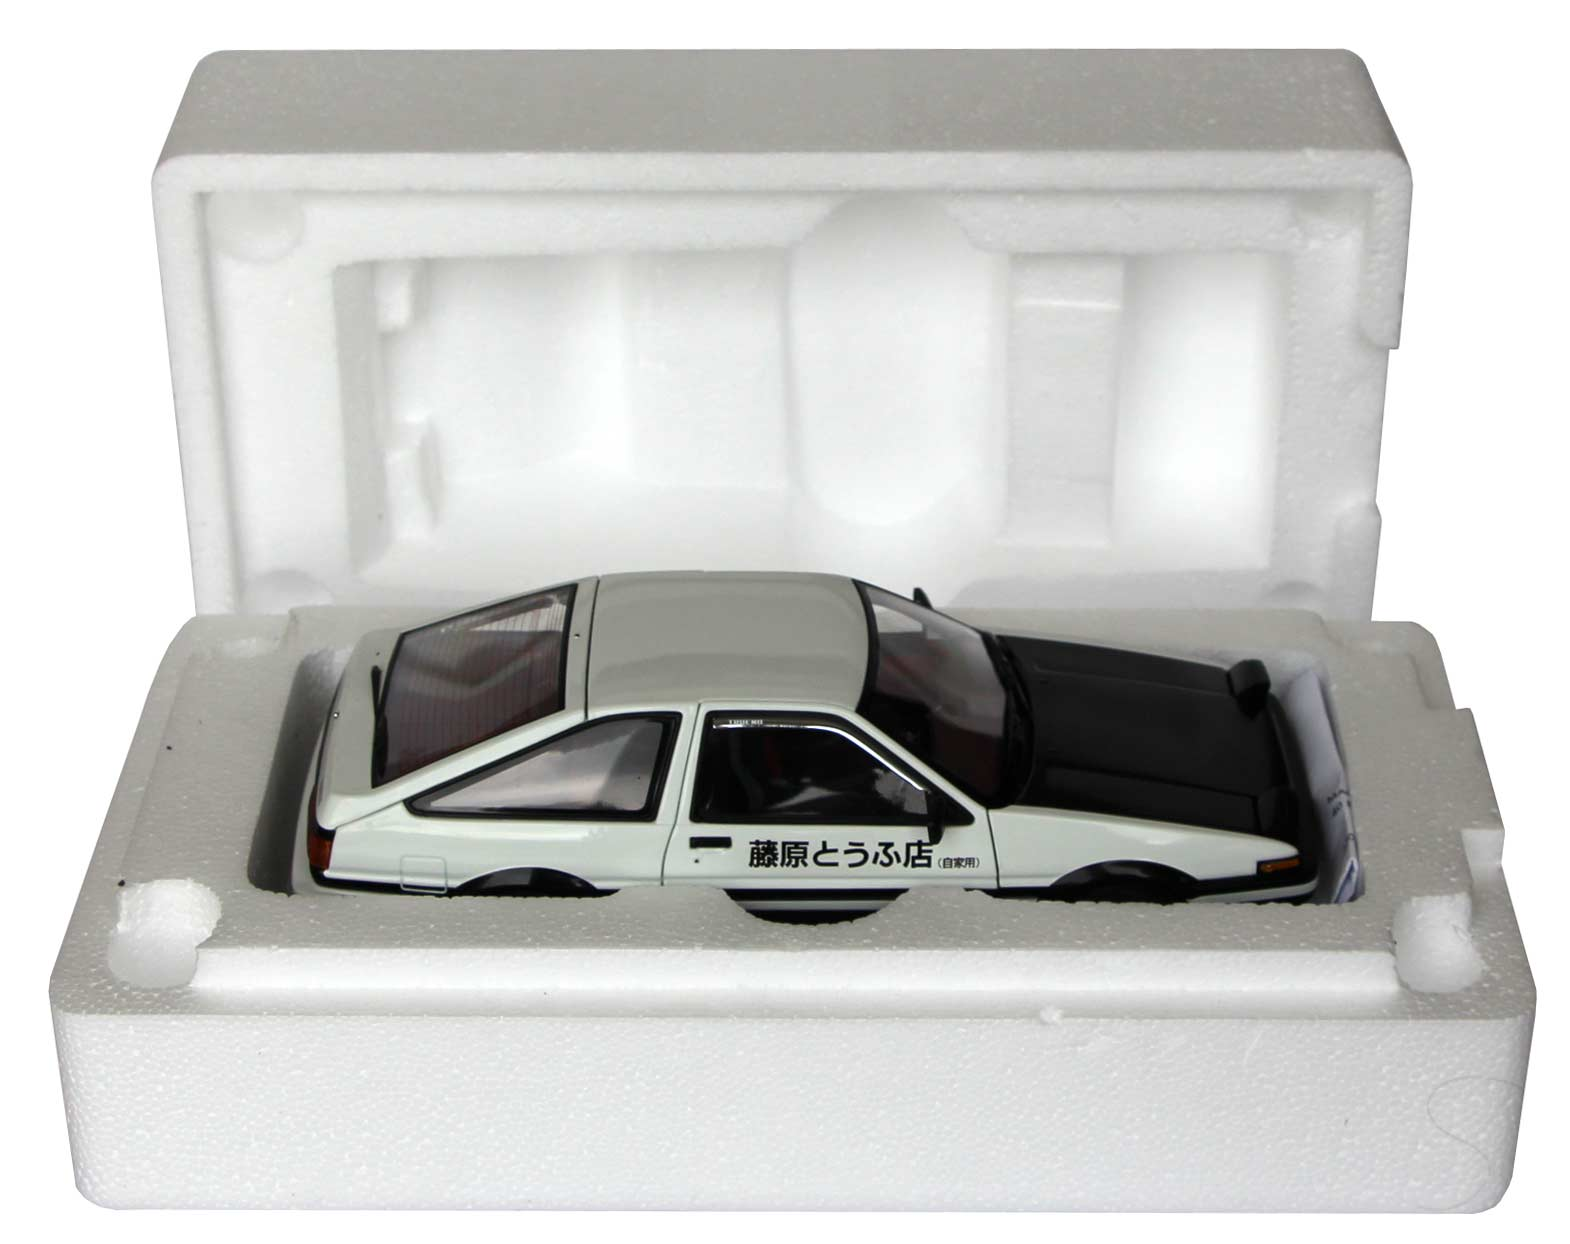 Toyota AE 86 - AUTOart - Initial D - packaging ouverture